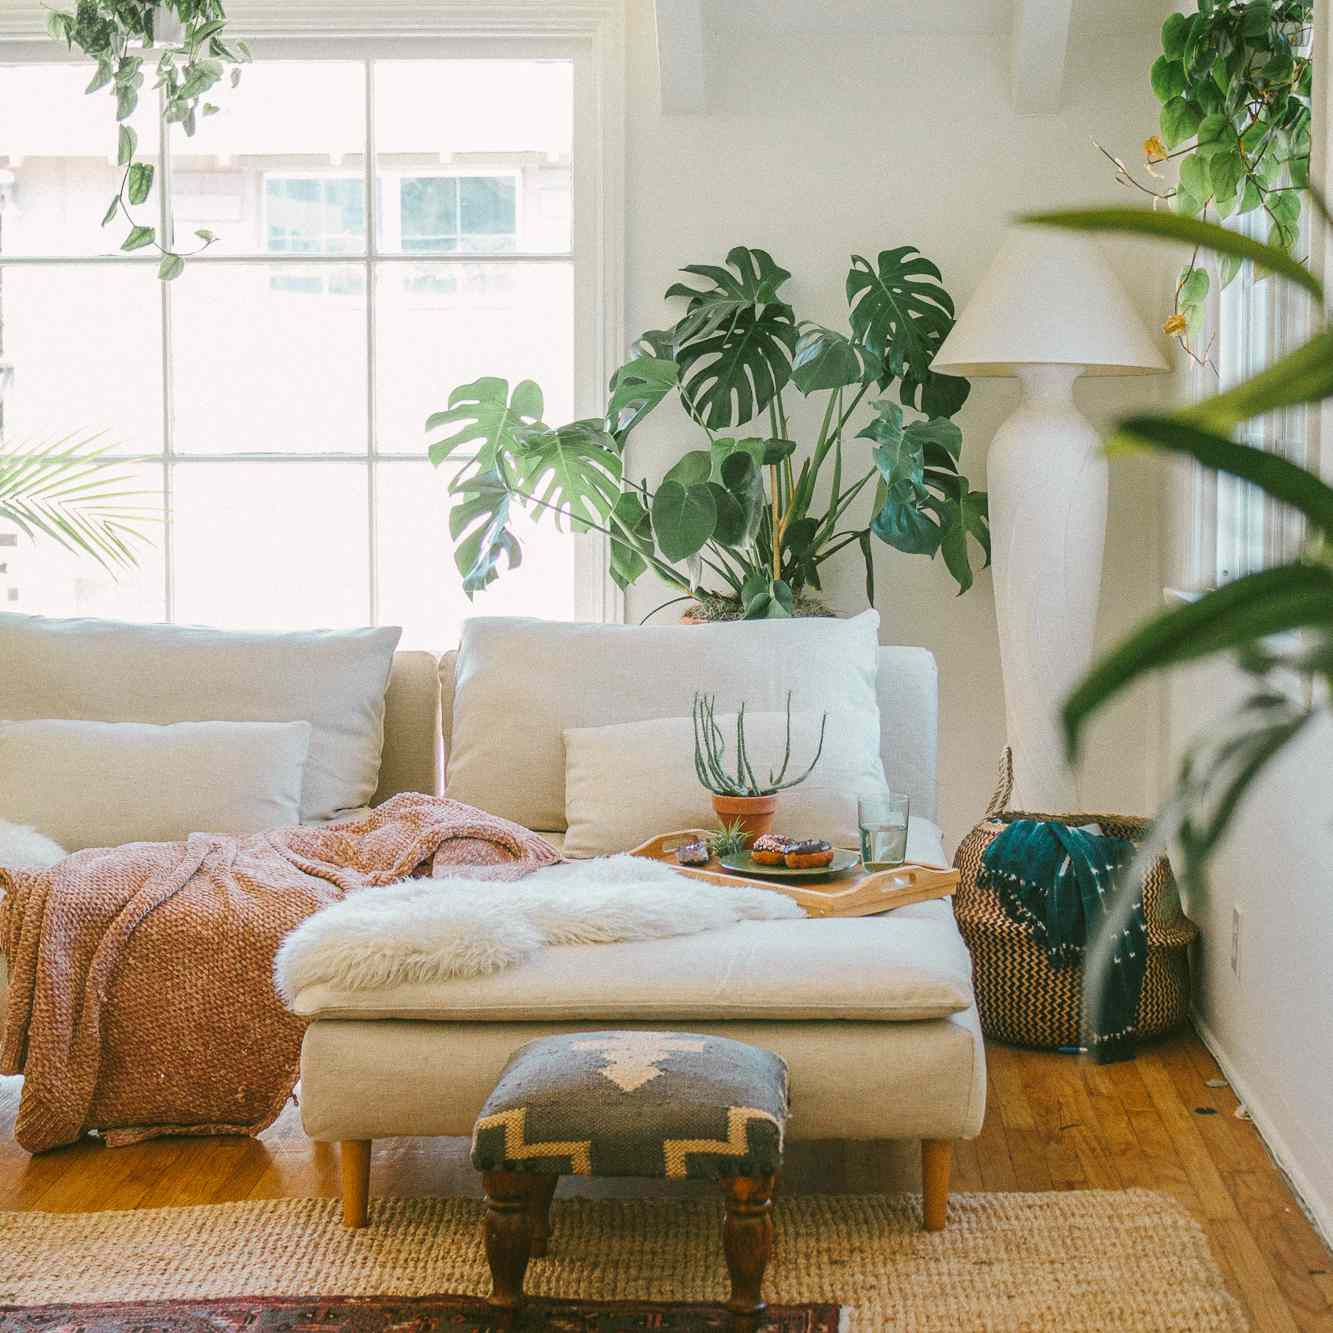 Cozy rental living room with throws, rugs, and pillows